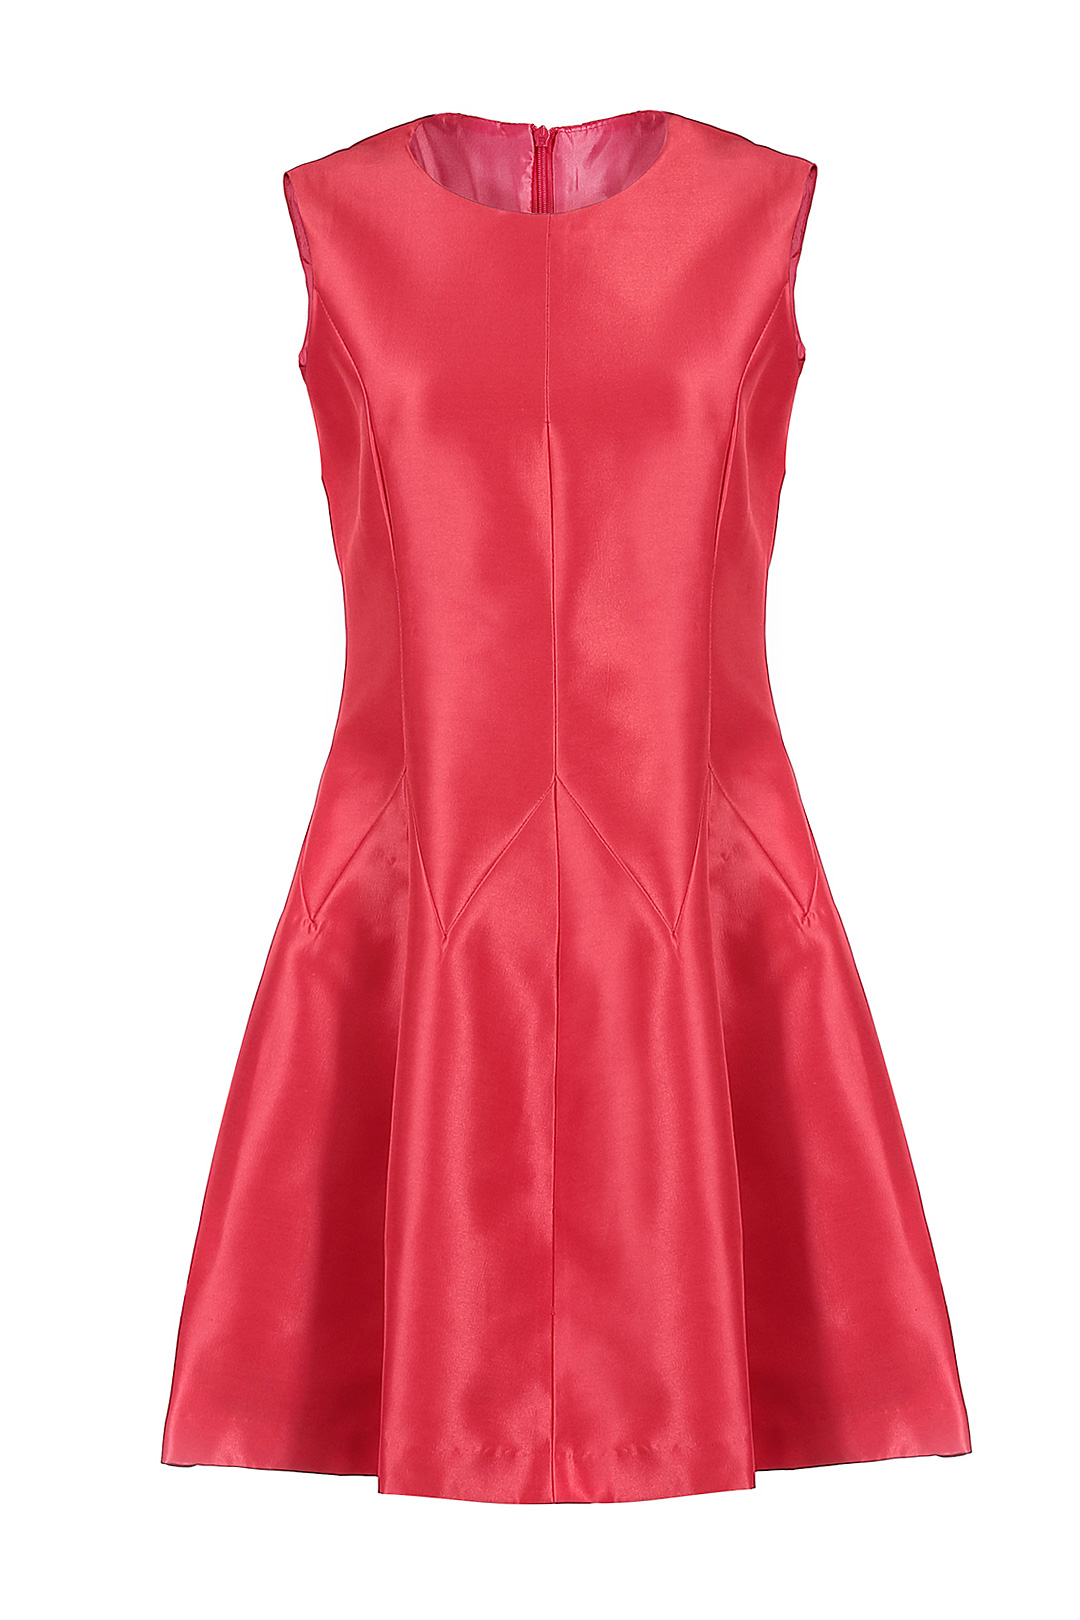 Party Dress In Red